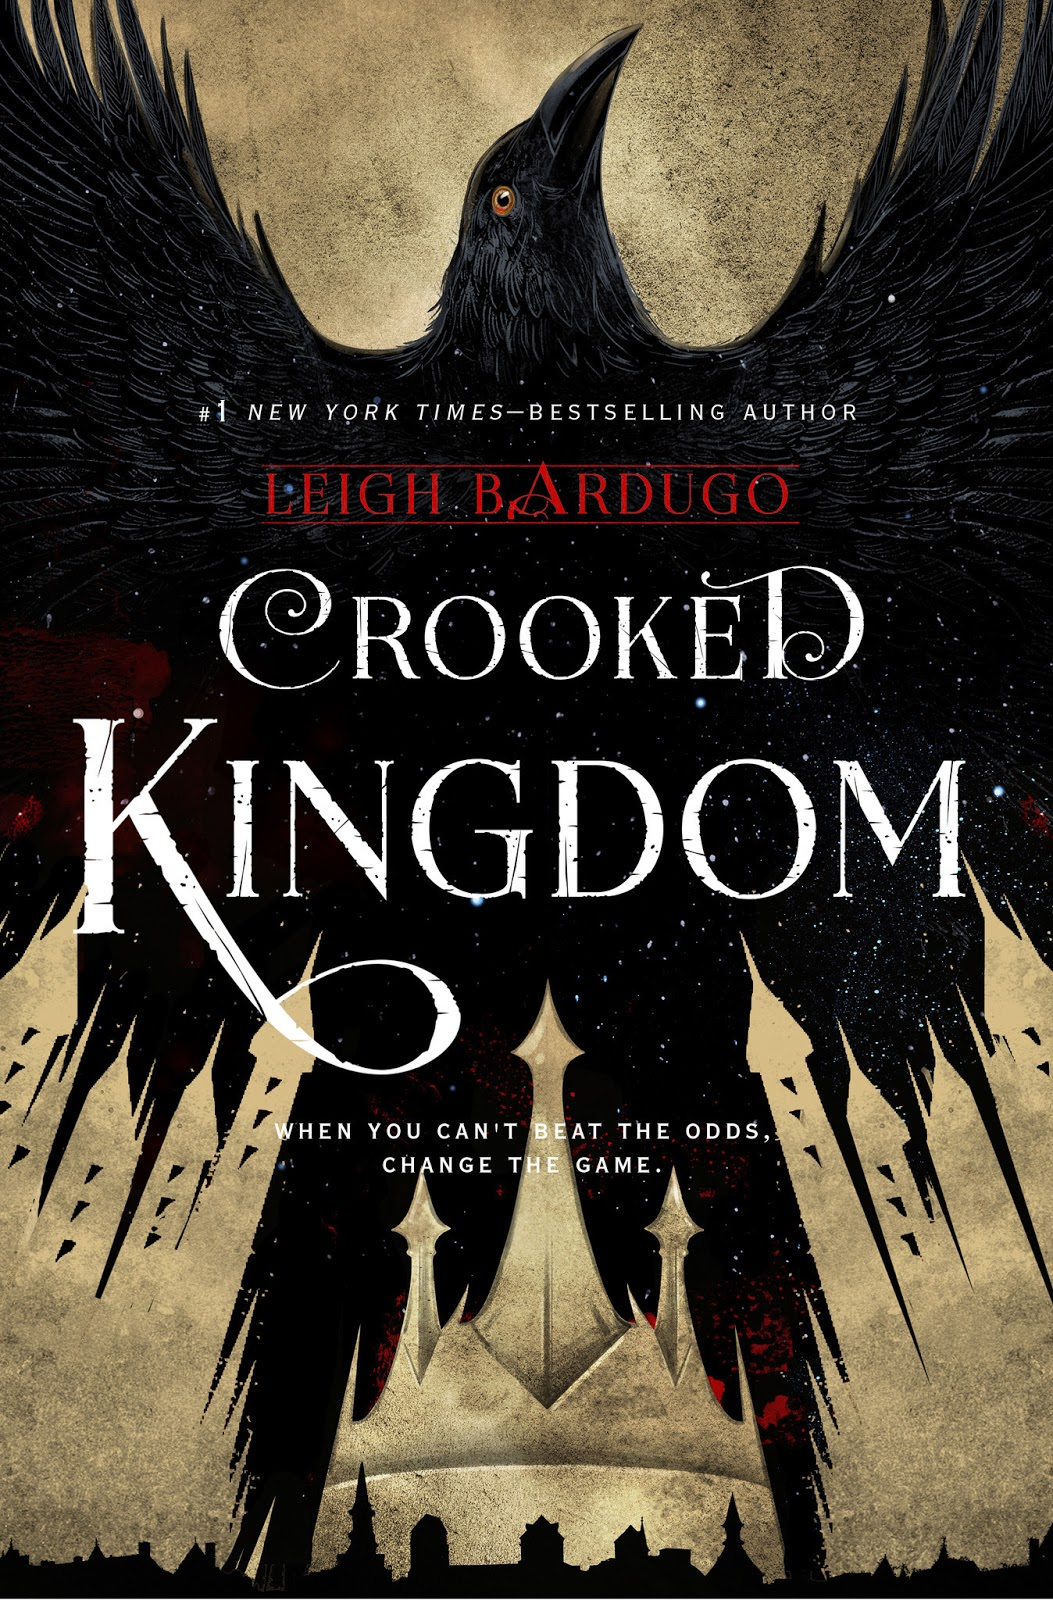 https://www.goodreads.com/book/show/22299763-crooked-kingdom